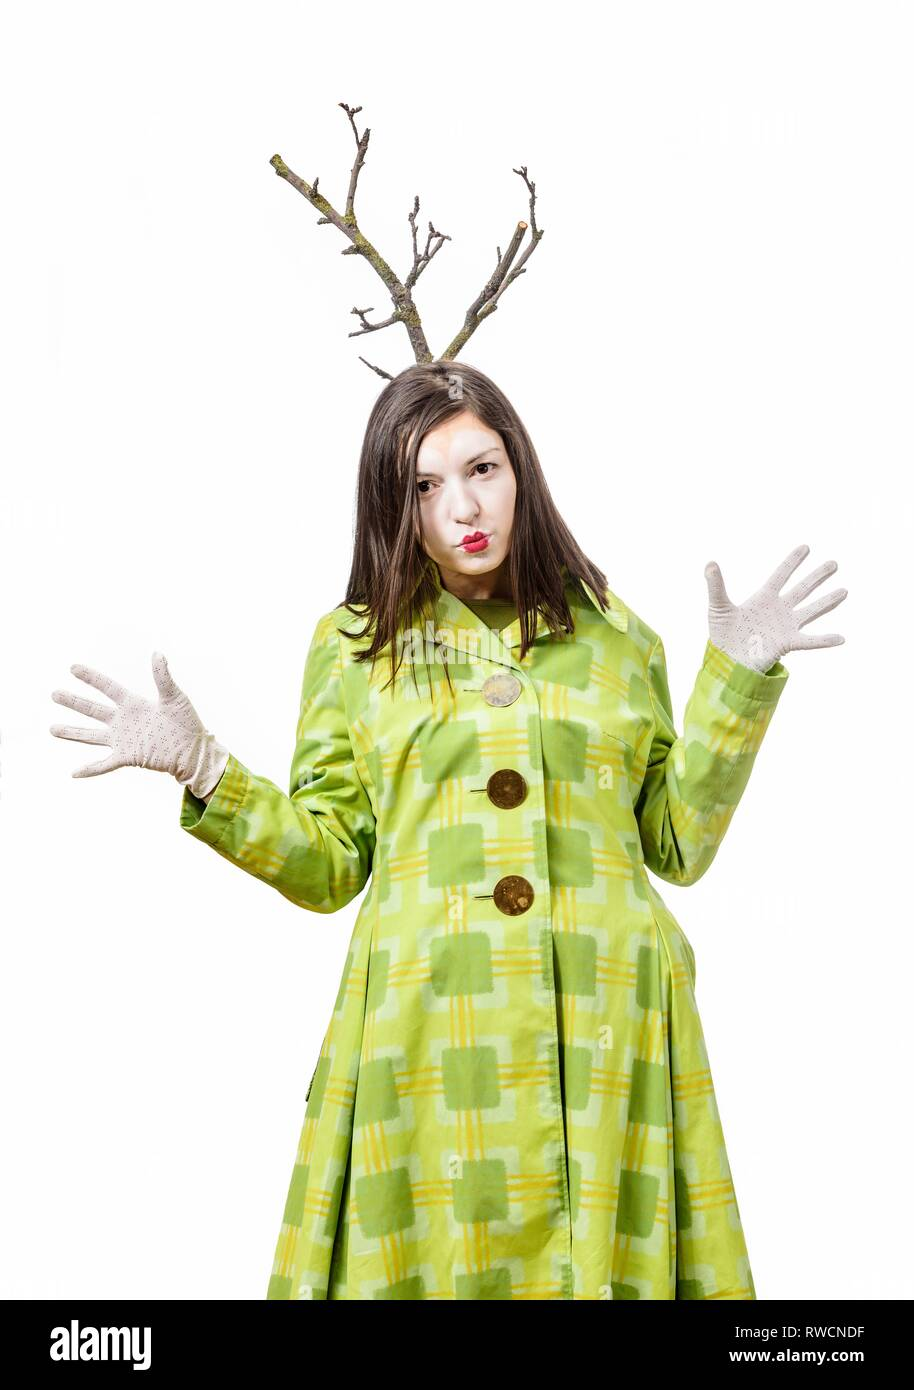 Funny mime performing and gesturing isolated on white background, a branch grows from his head. - Stock Image